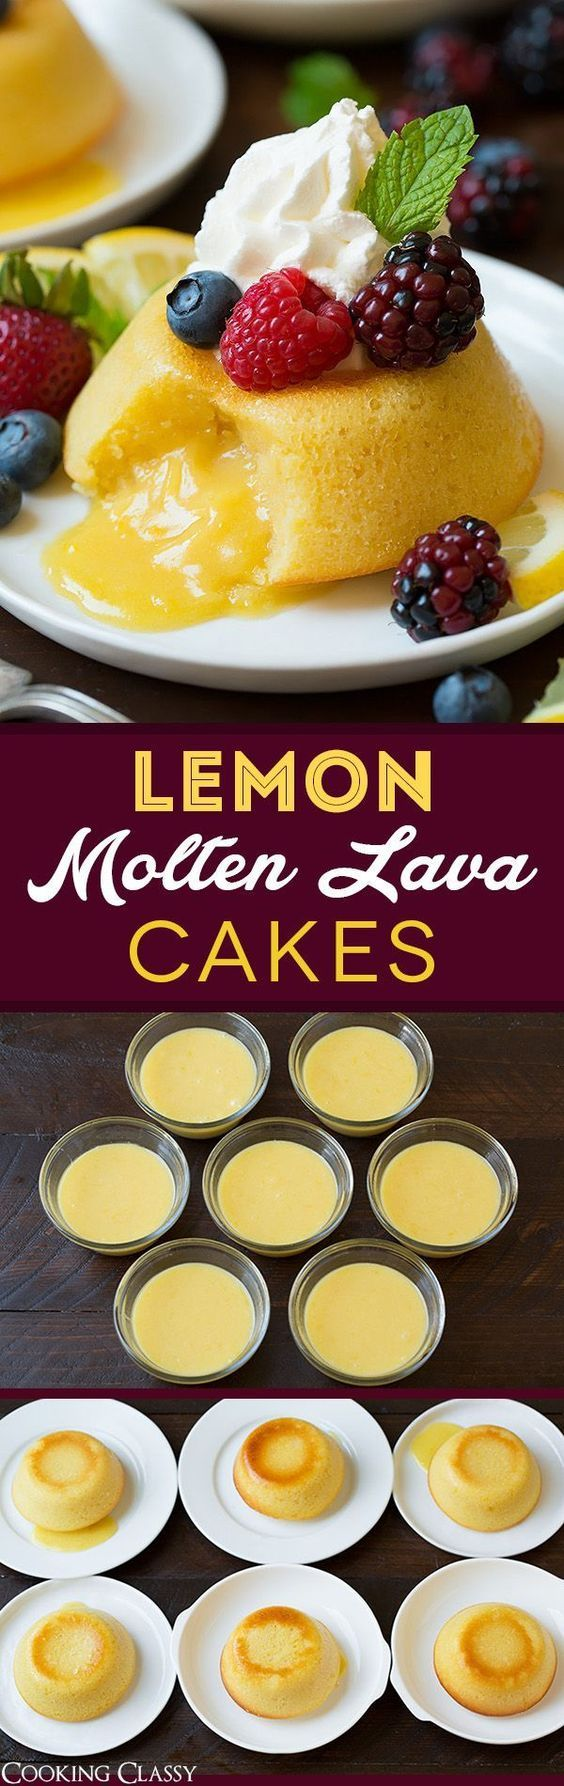 Easy Lemon Molten Lava Cakes